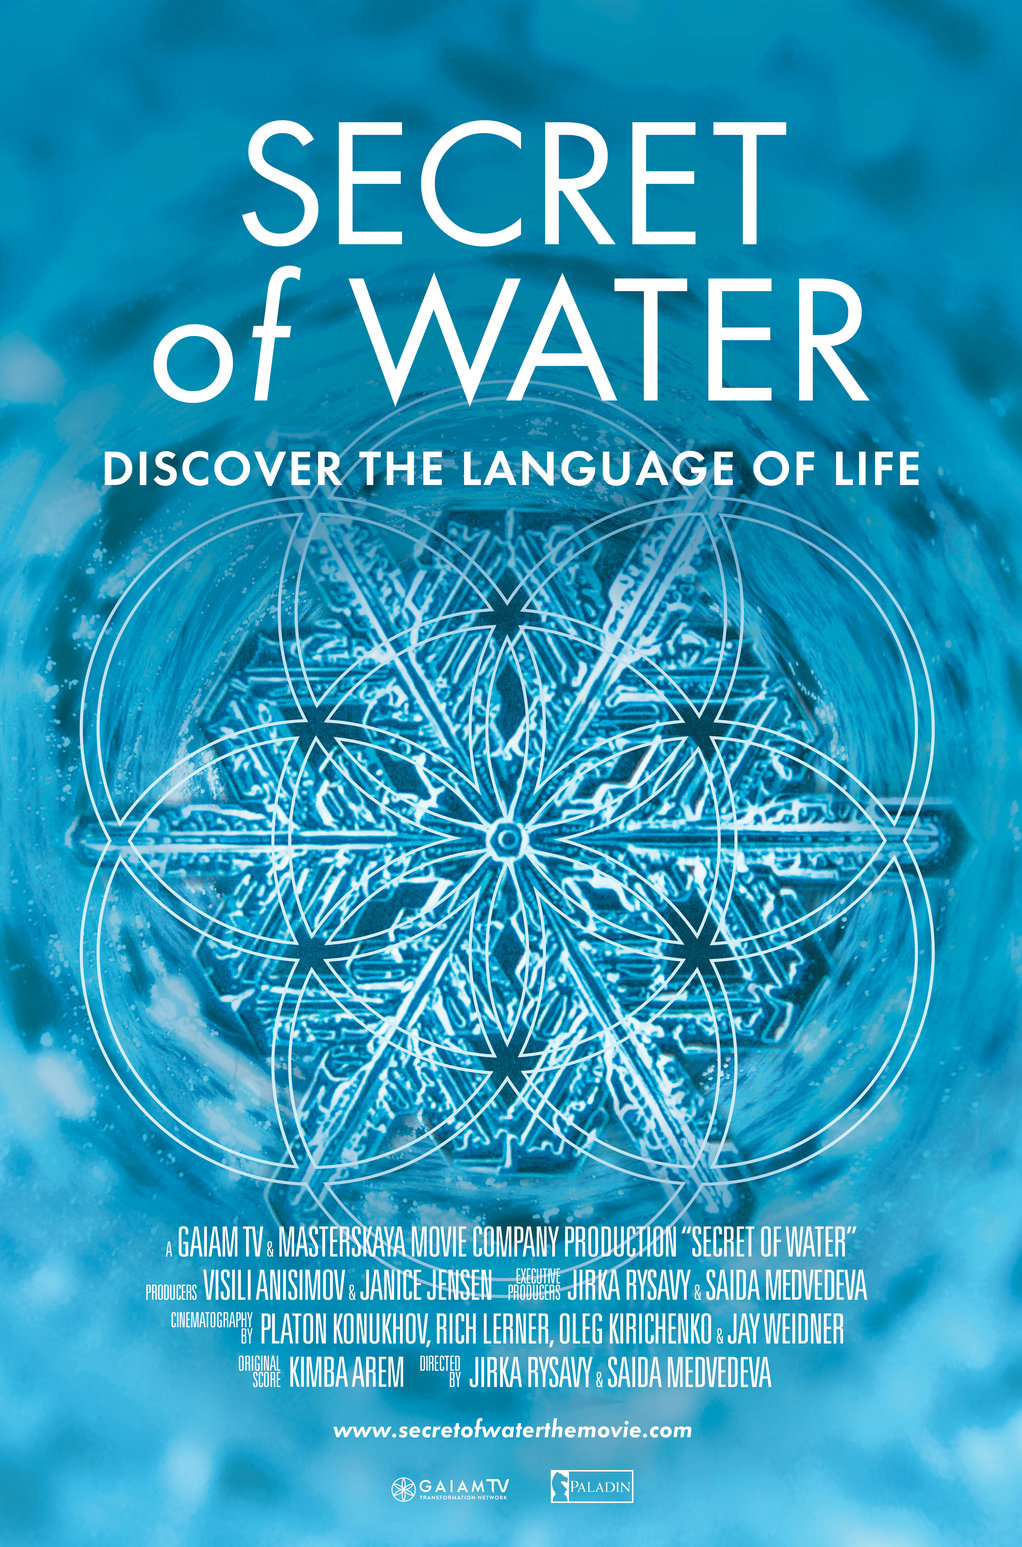 poster for the Secret of Water documentary